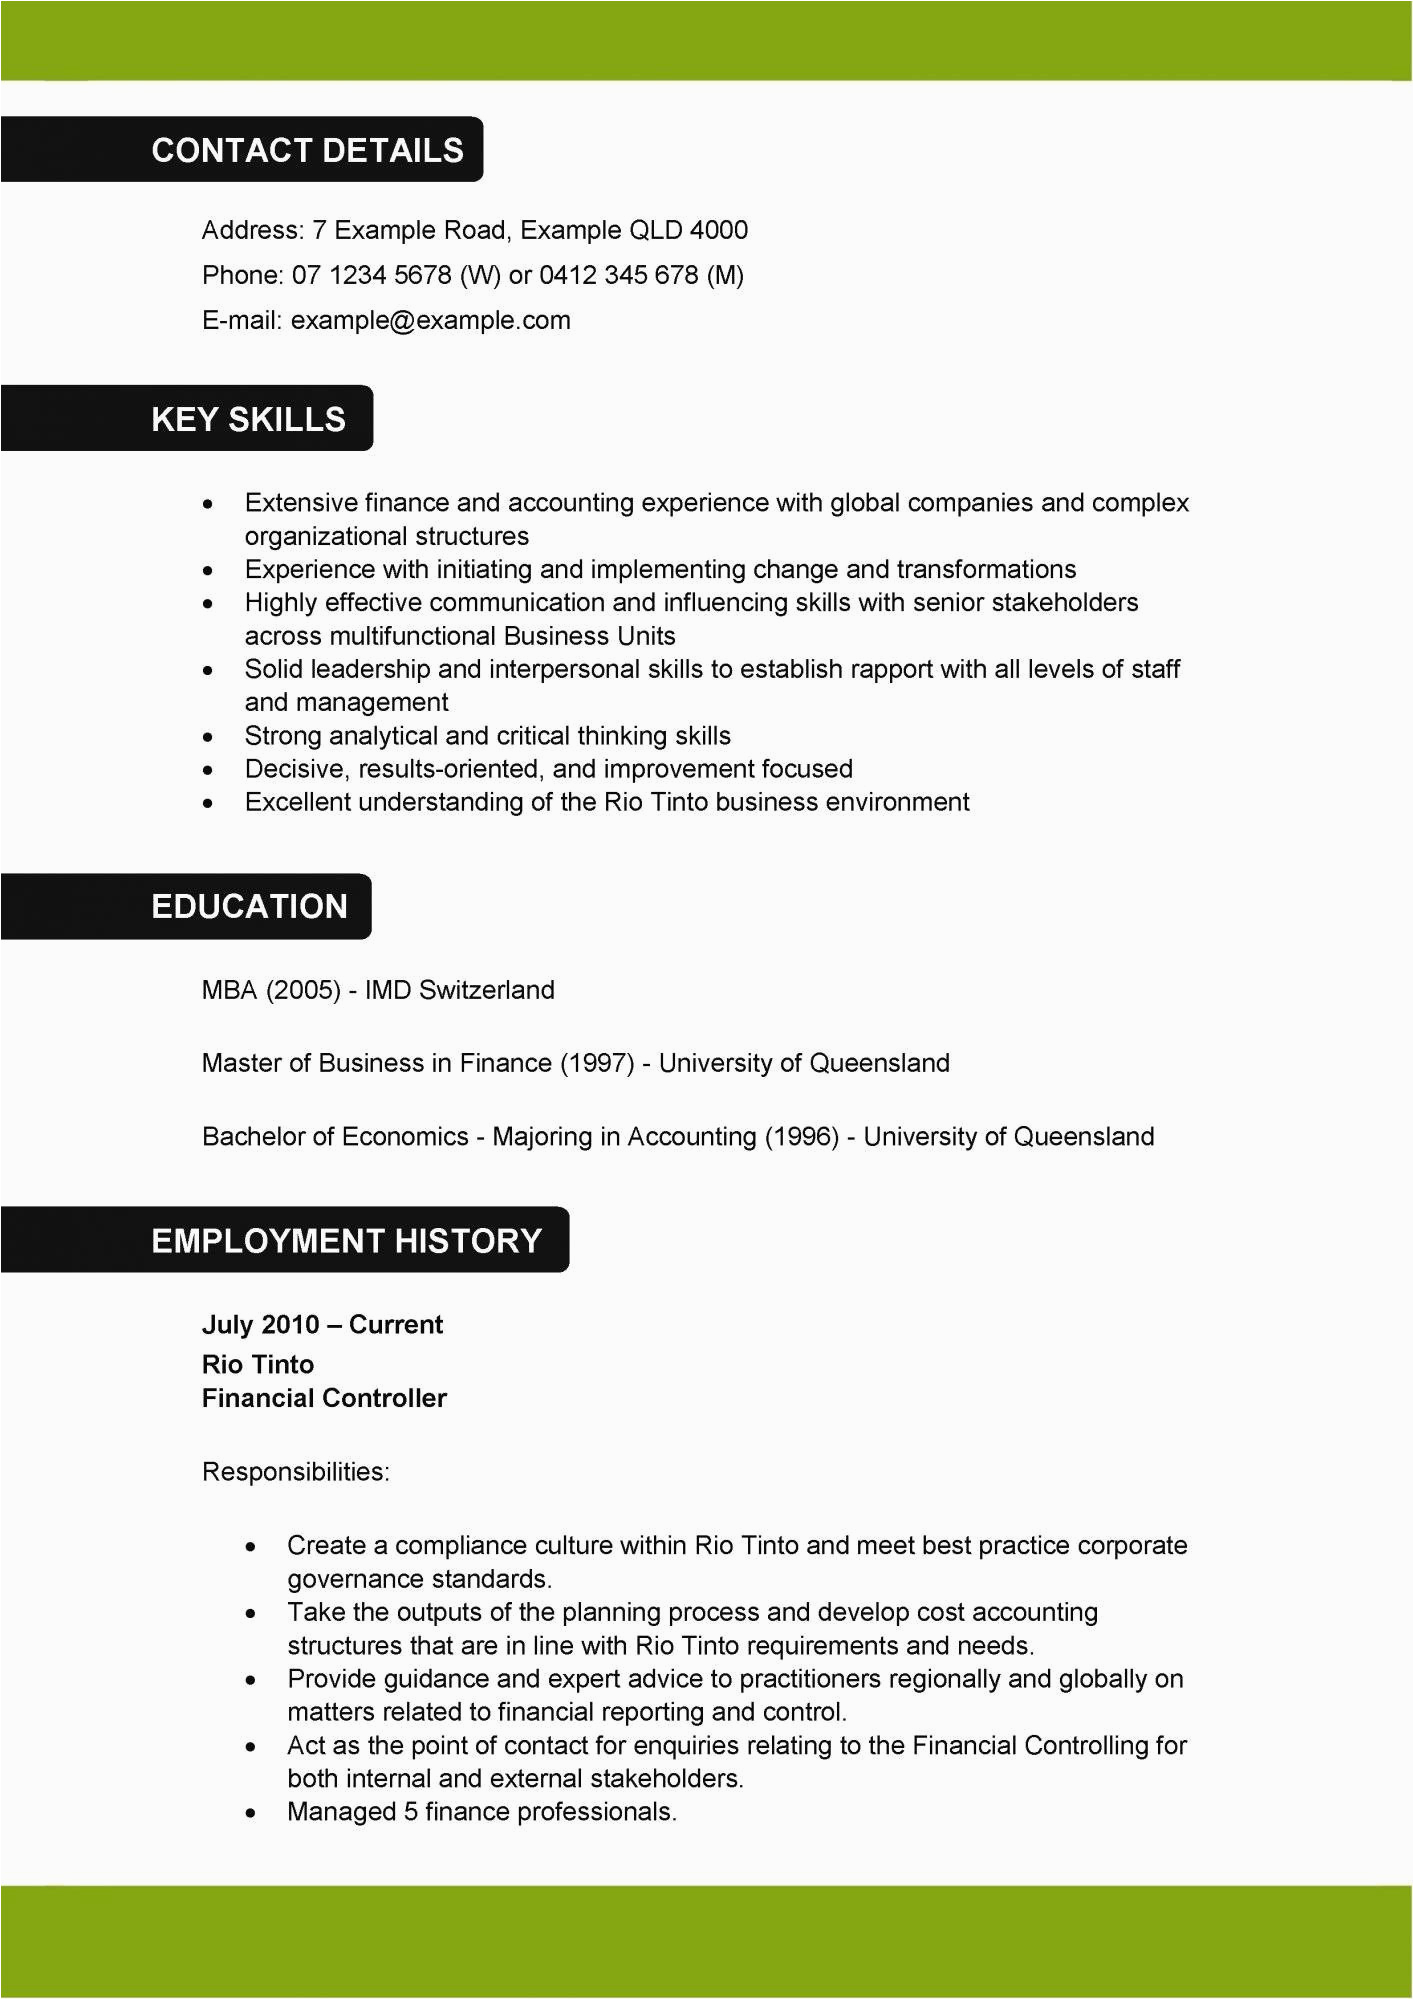 Sample Resume for Aged Care Worker Position Sample Resume for Aged Care Worker Position